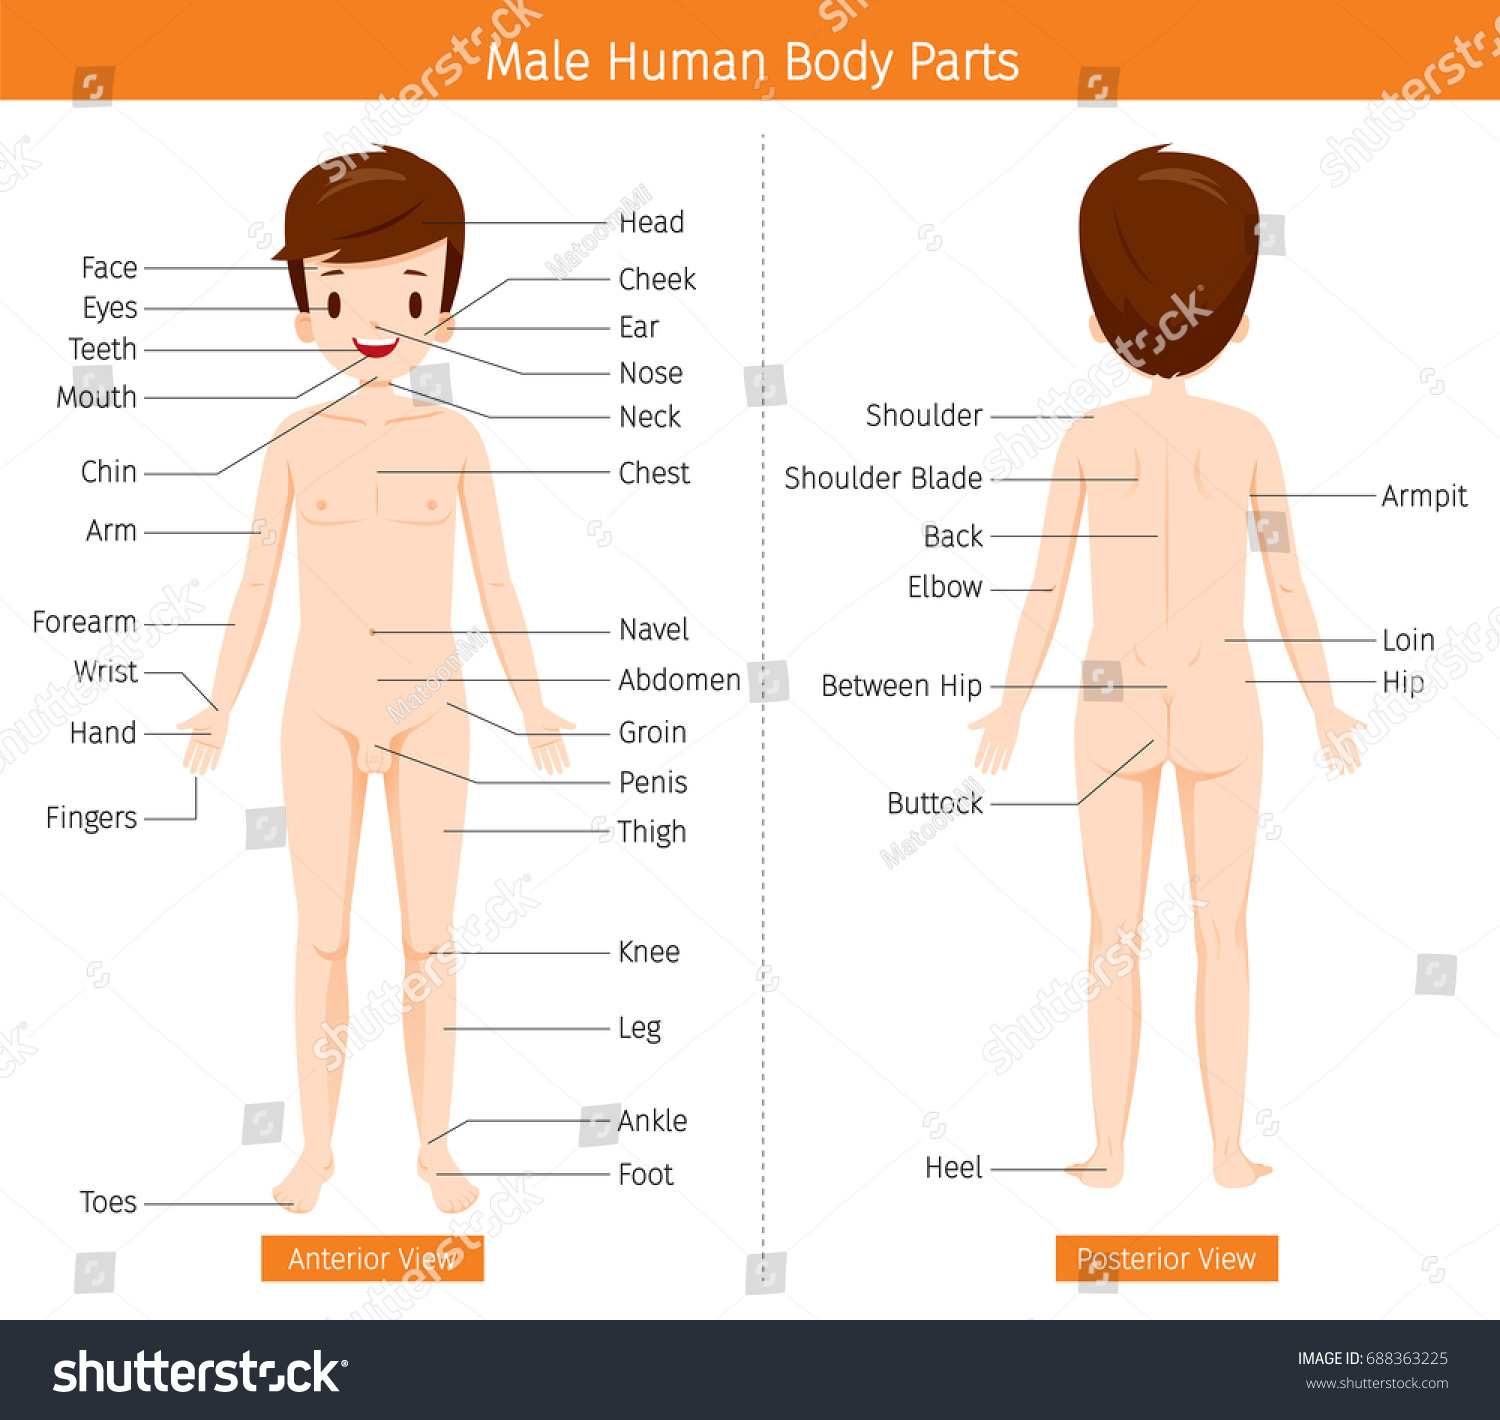 Male Human Anatomy External Organs Body Stock Vector Royalty Free